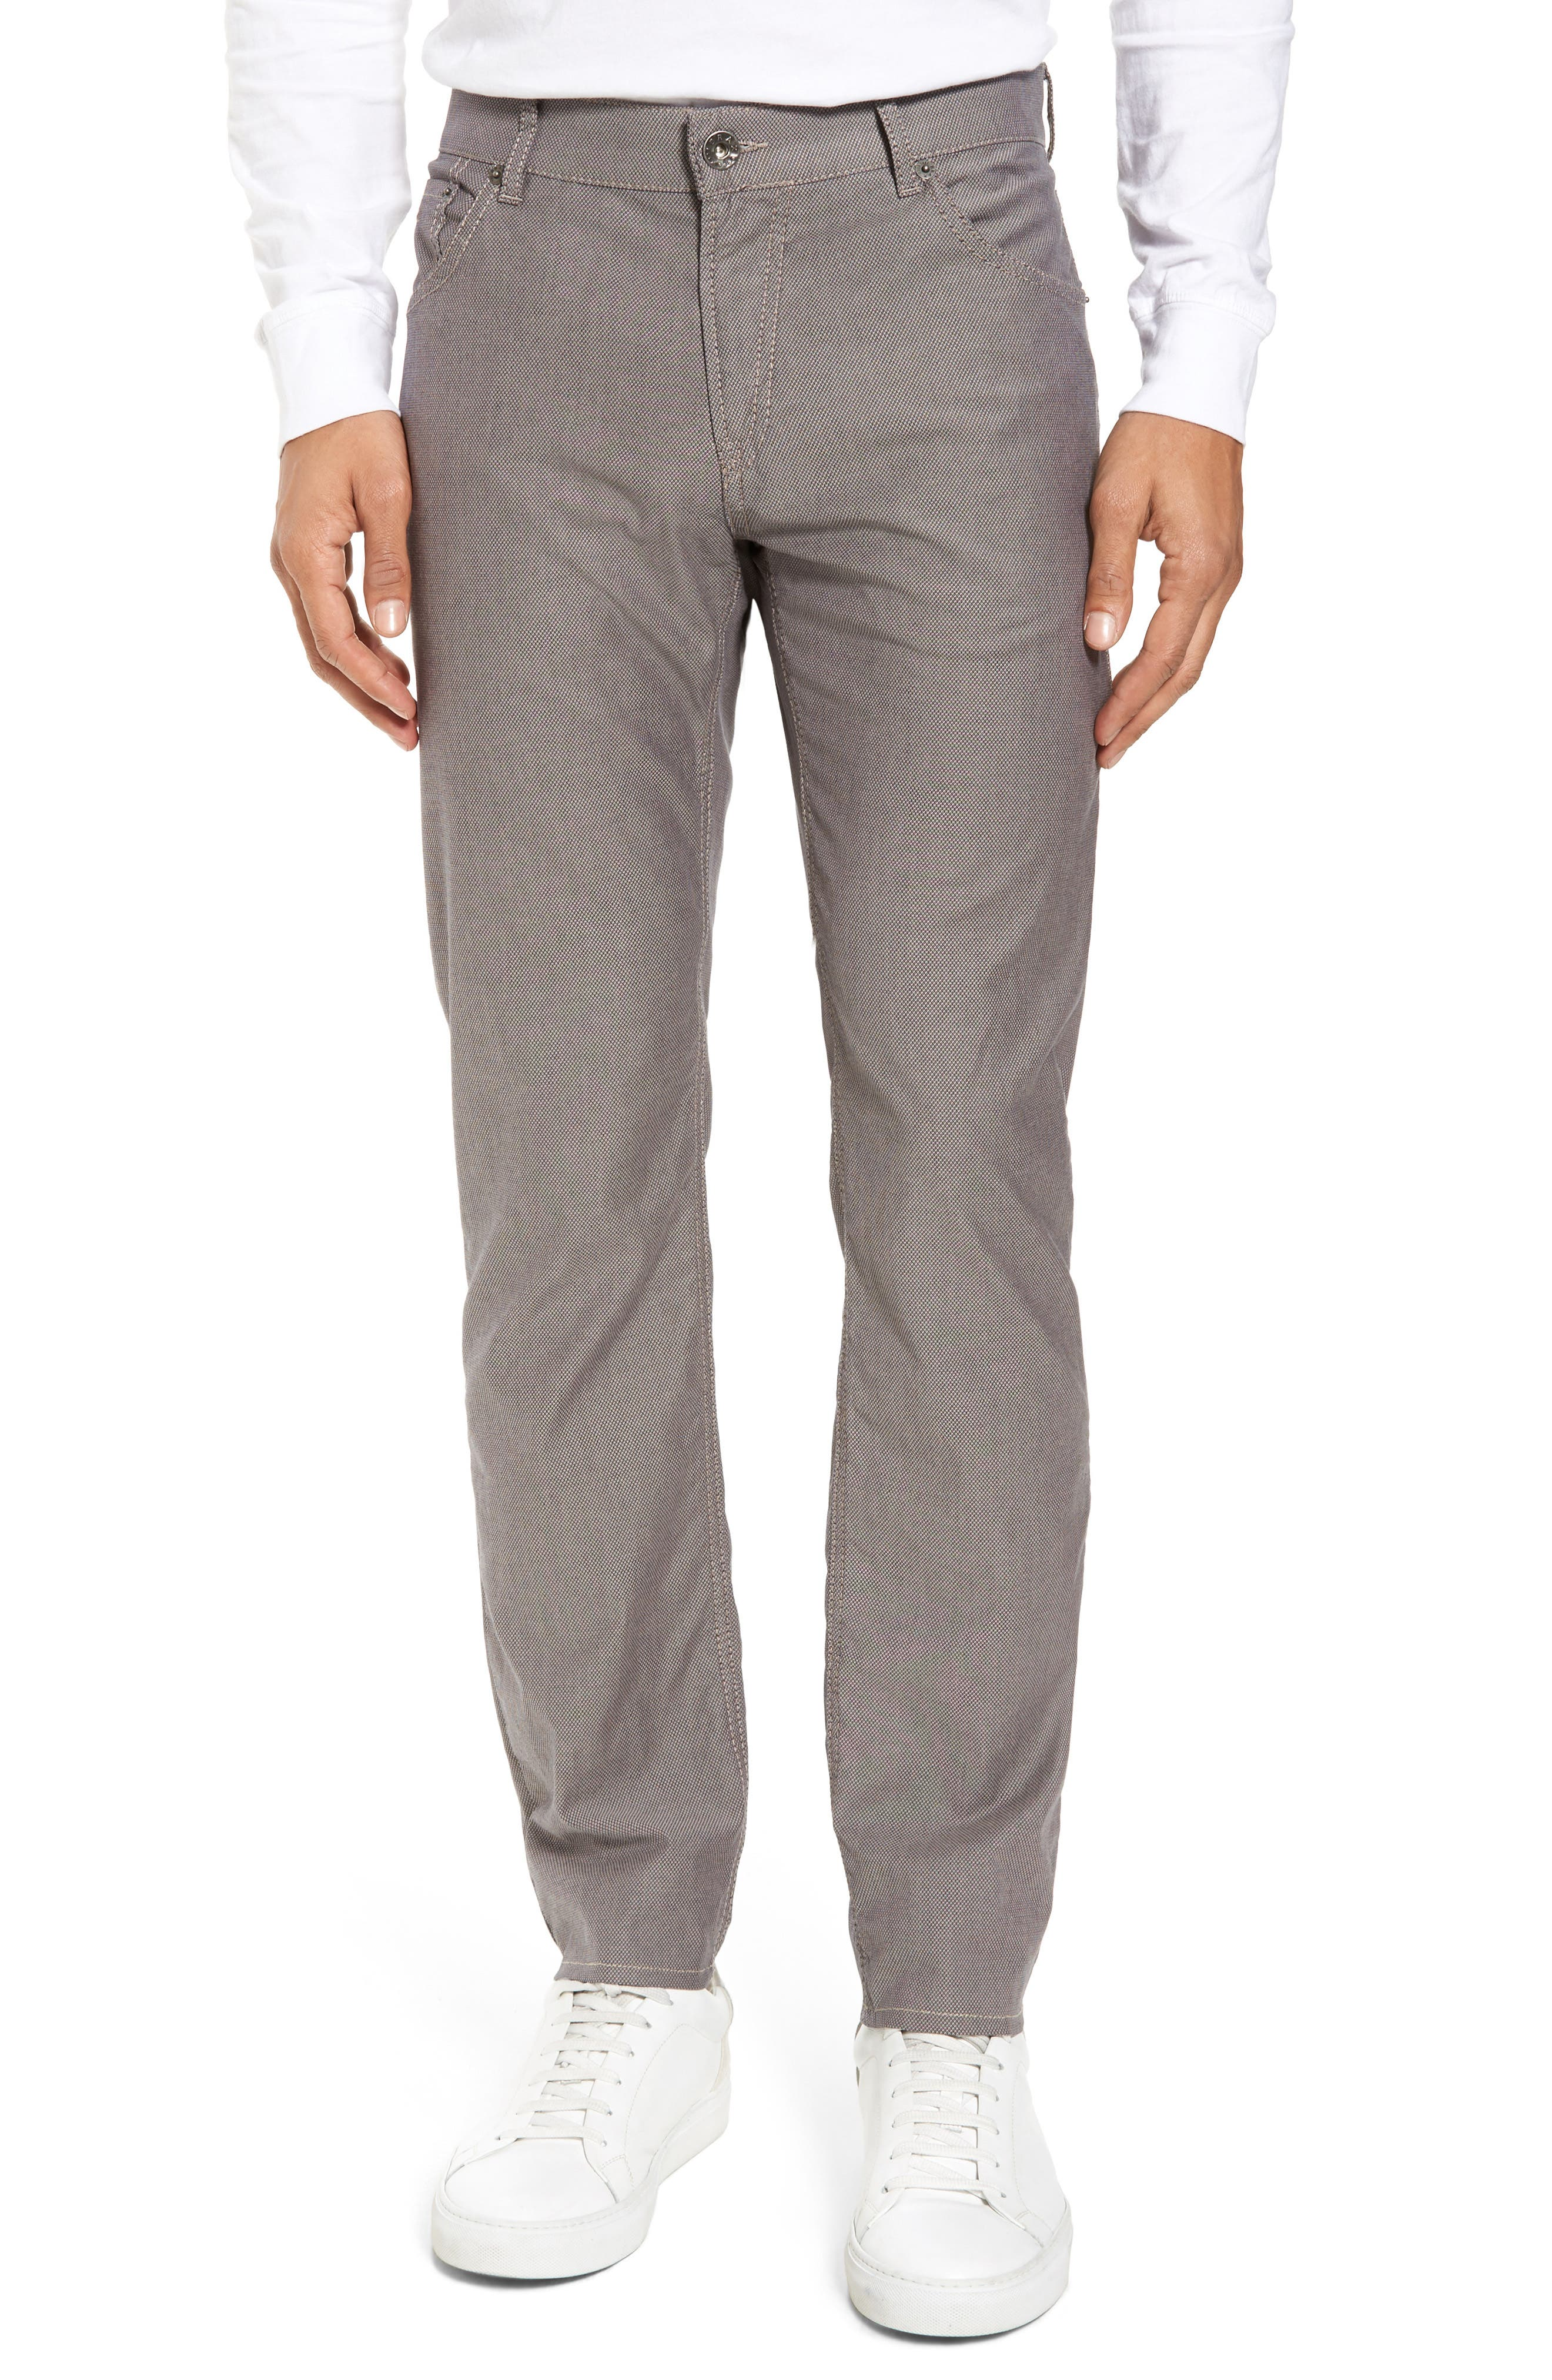 Chuck Stretch Cotton Pants,                             Main thumbnail 1, color,                             Beige